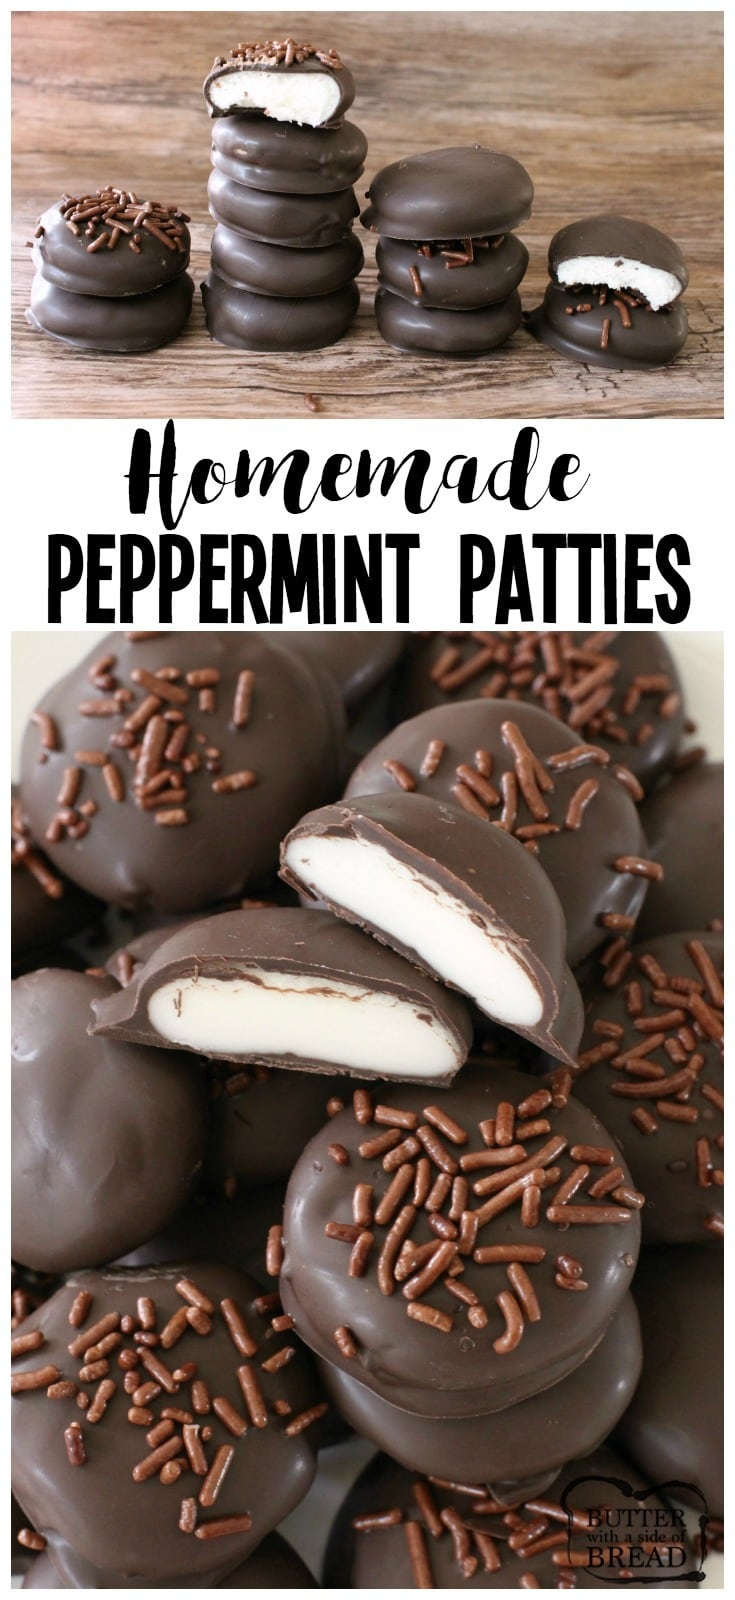 Easy Homemade Peppermint Patty recipe with just a handful of ingredients! Copycat York Peppermint Patties but BETTER. Simple soft, sweetened mint candy covered in chocolate for a delicious, easy peppermint patty candy. #peppermint #candy #chocolate #recipe #food #dessert